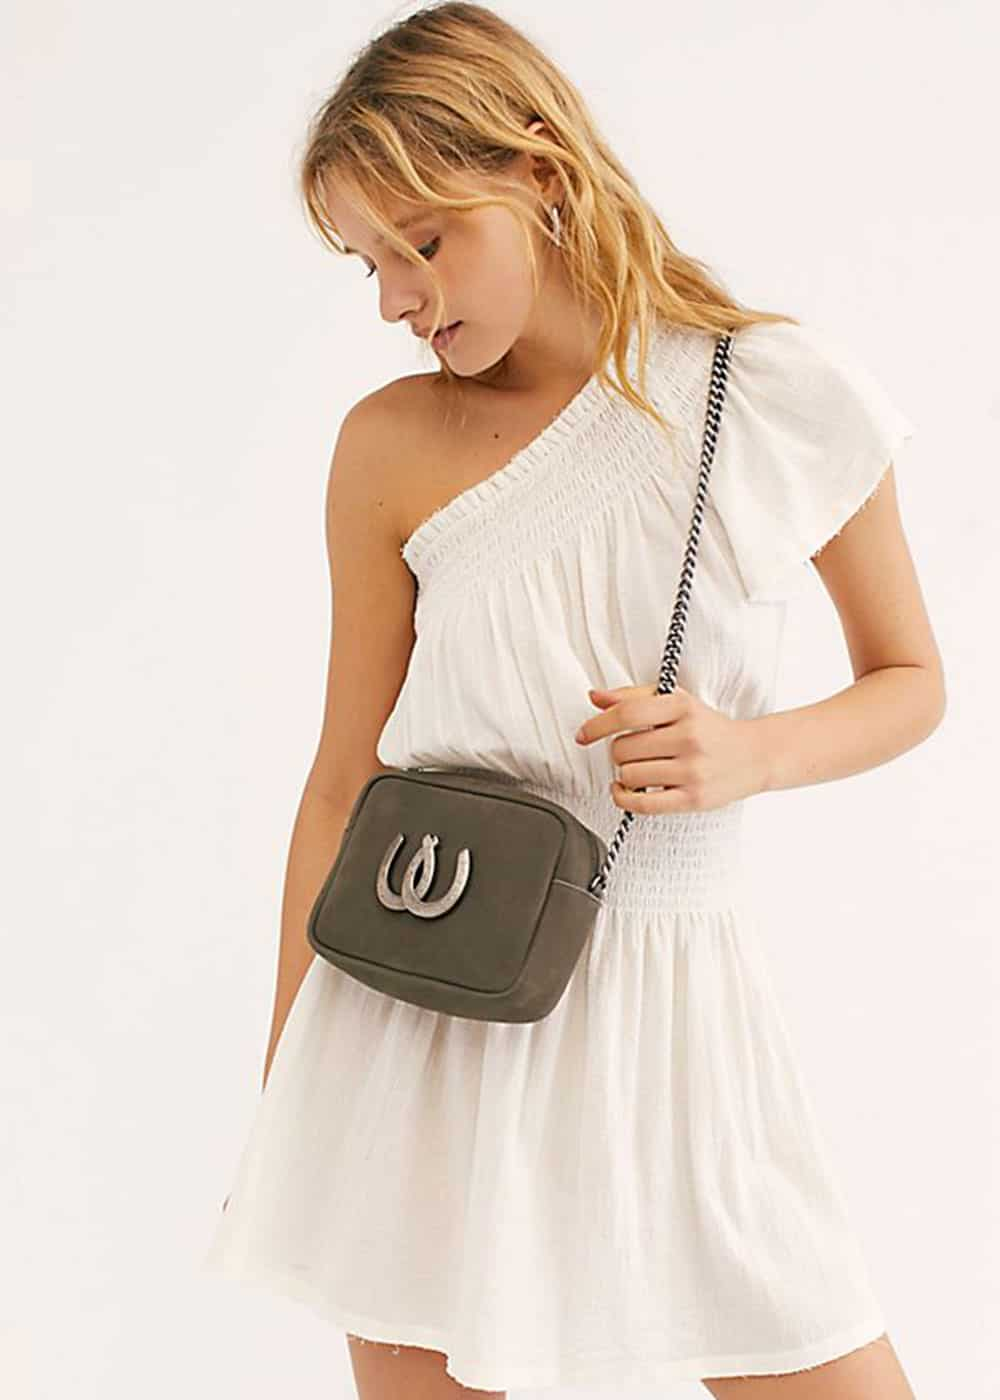 understated camera bag free people cowgirl magazine